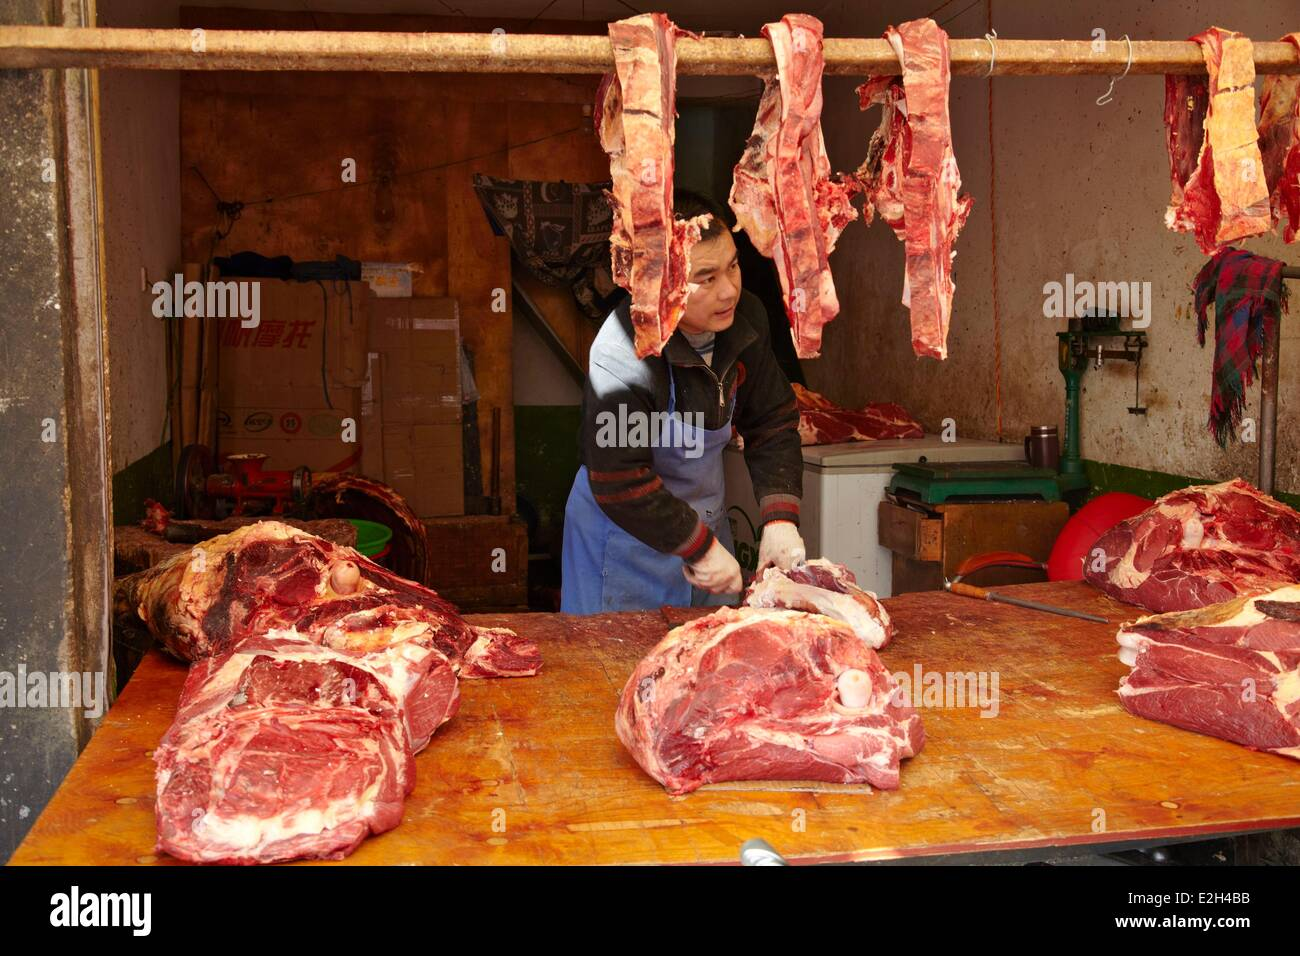 China Tibet Lhassa food market of Barkor with meat - Stock Image